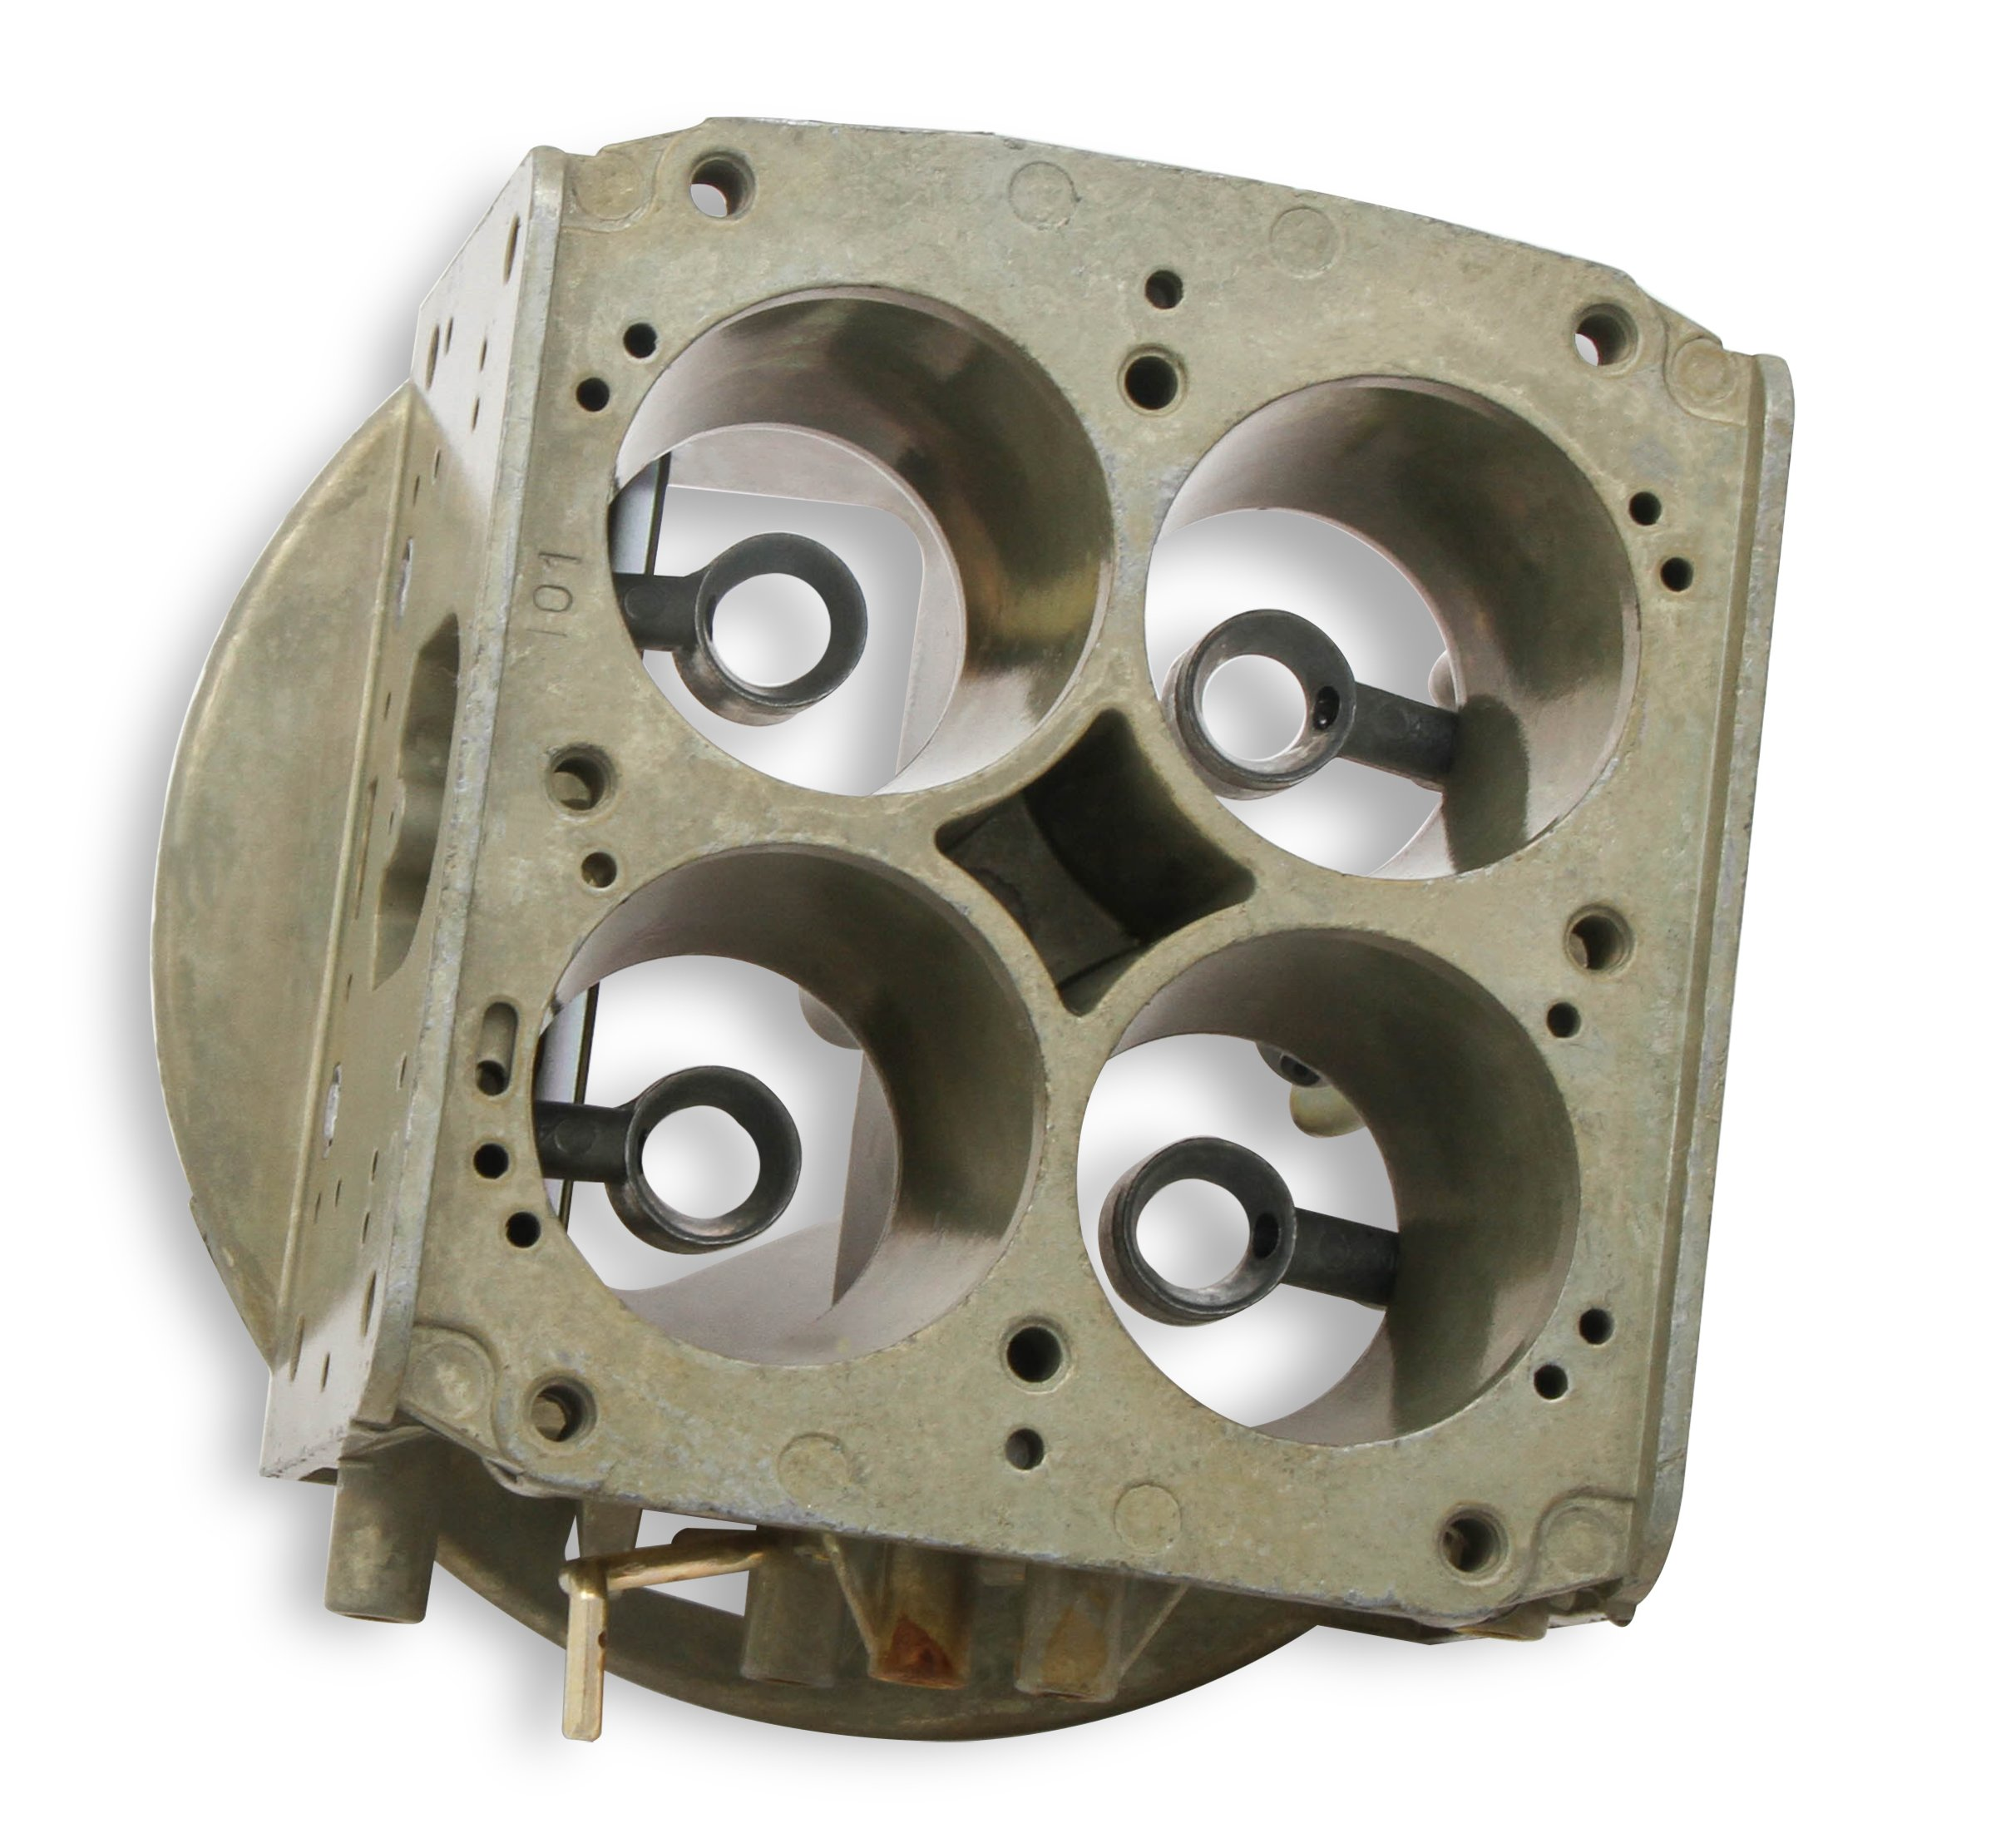 Holley 134-338 Replacement Main Body